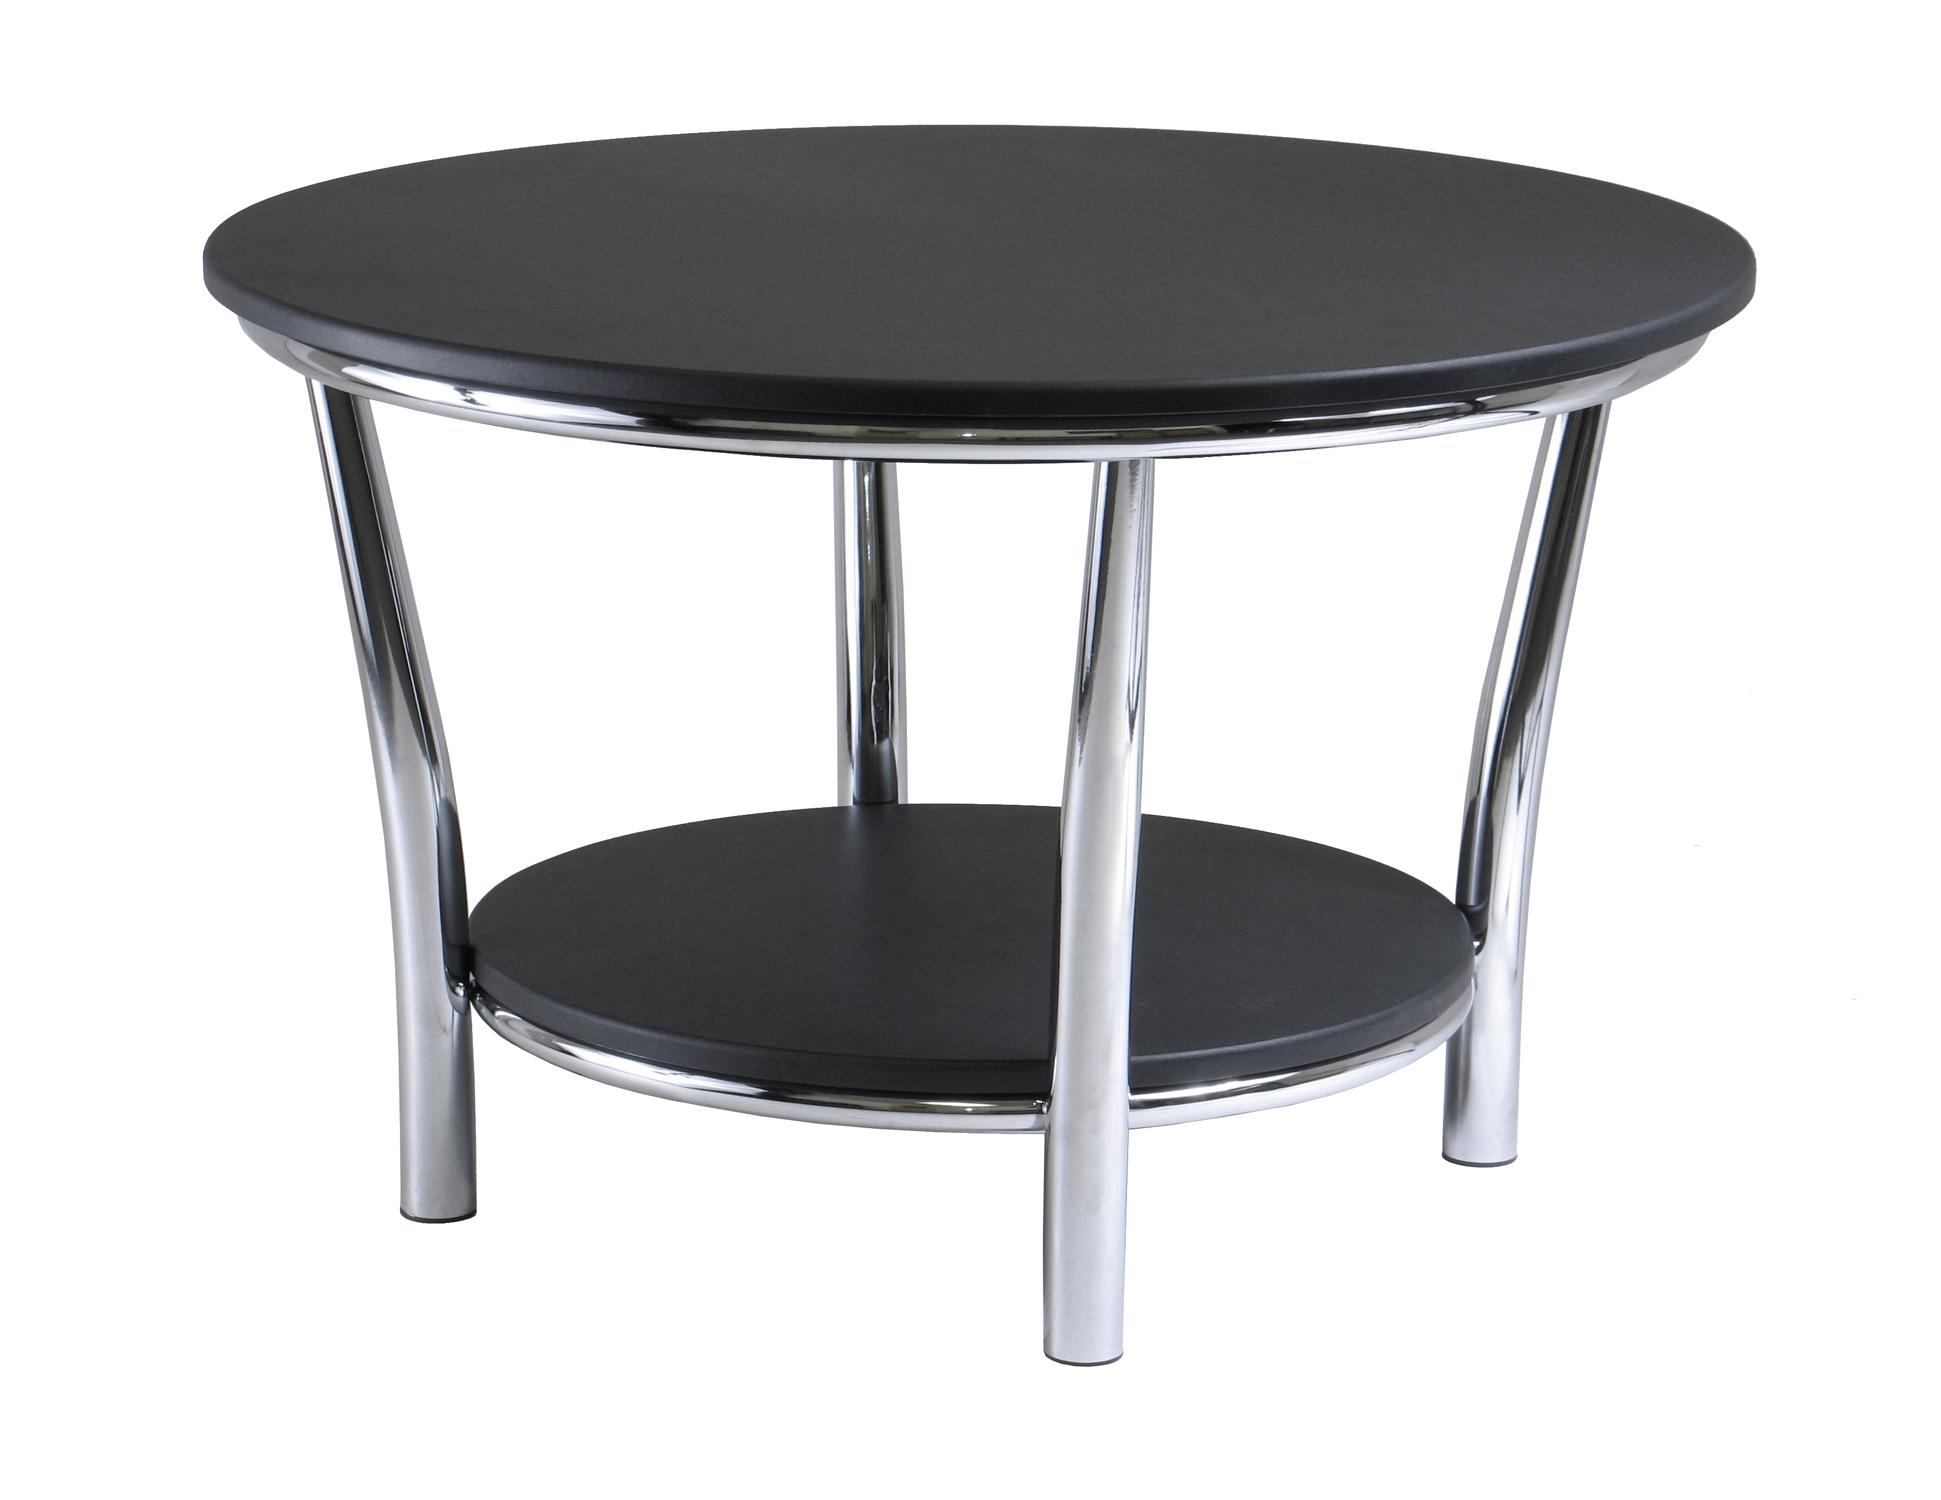 mid century table legs probably super best black side metal coffee elegance and durability glass door water falls with different materials several rooms nest rattan accent lamp